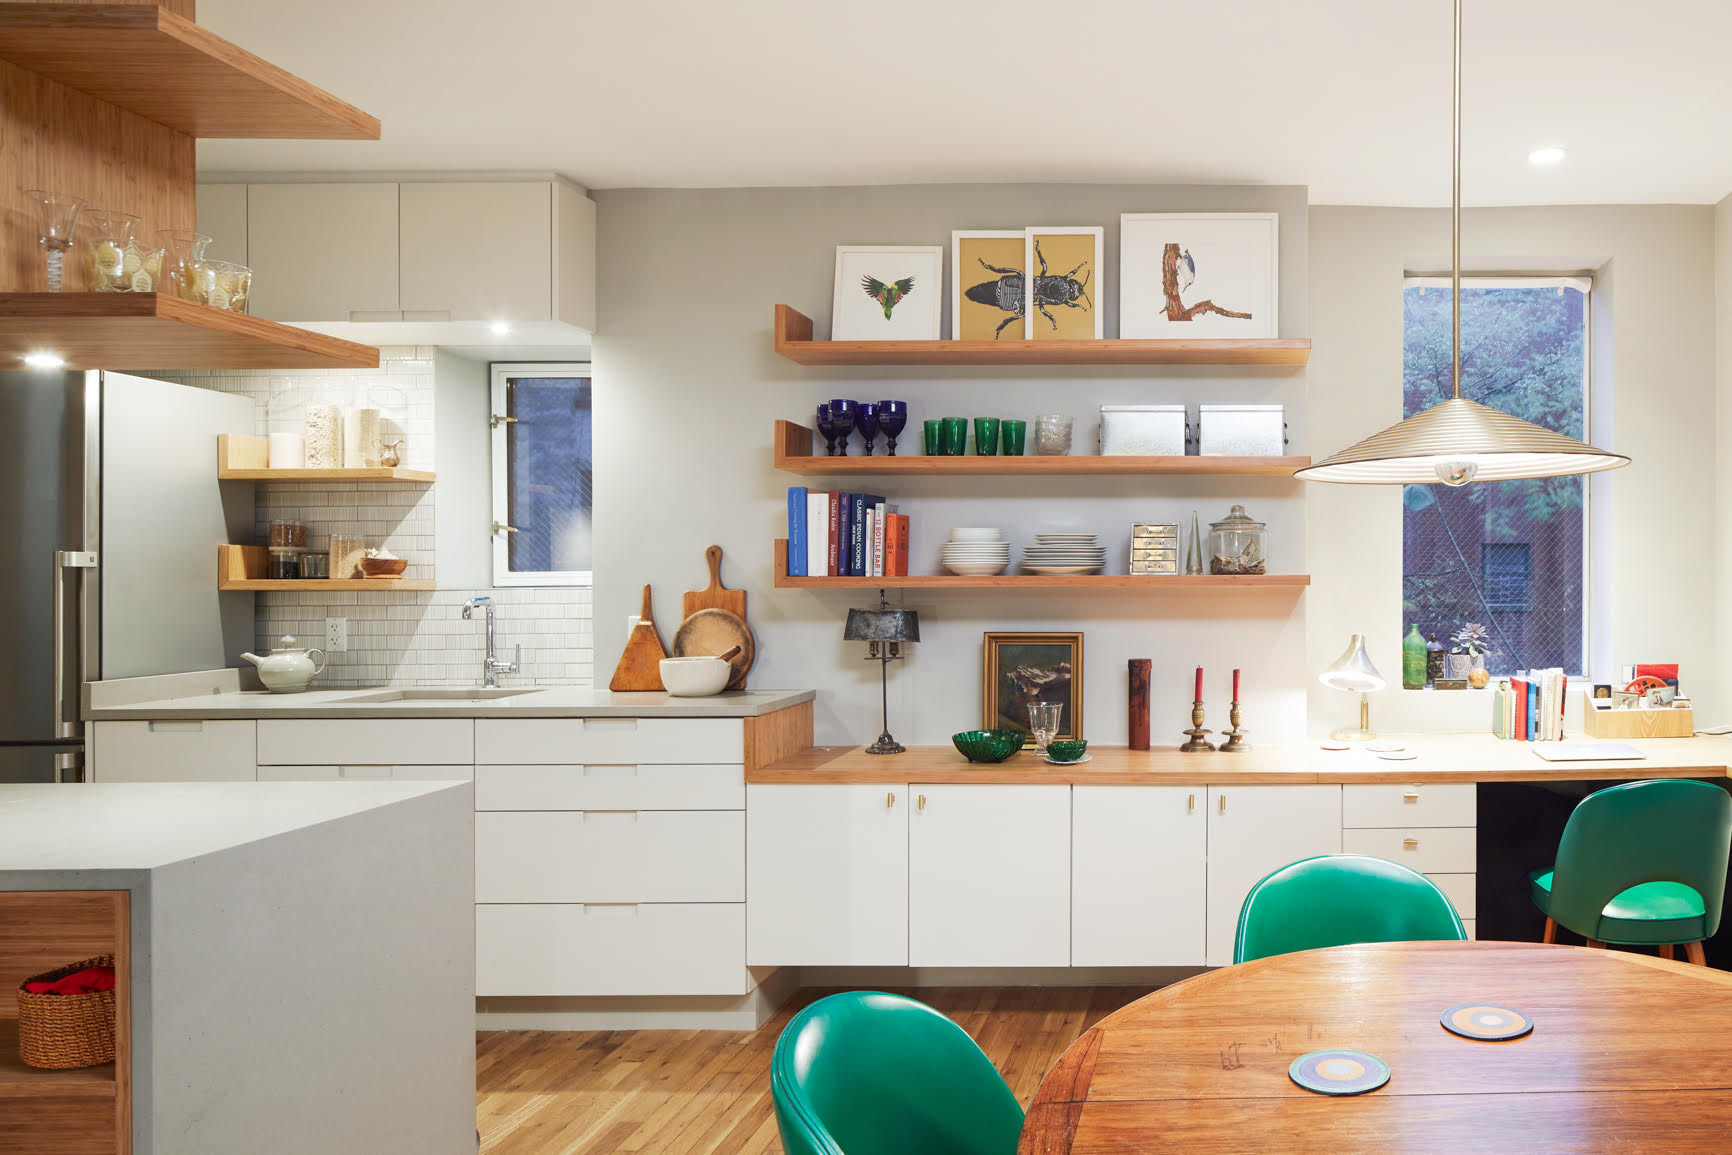 Ikea Vs Home Depot Which Should You Choose For A Nyc Kitchen Renovation